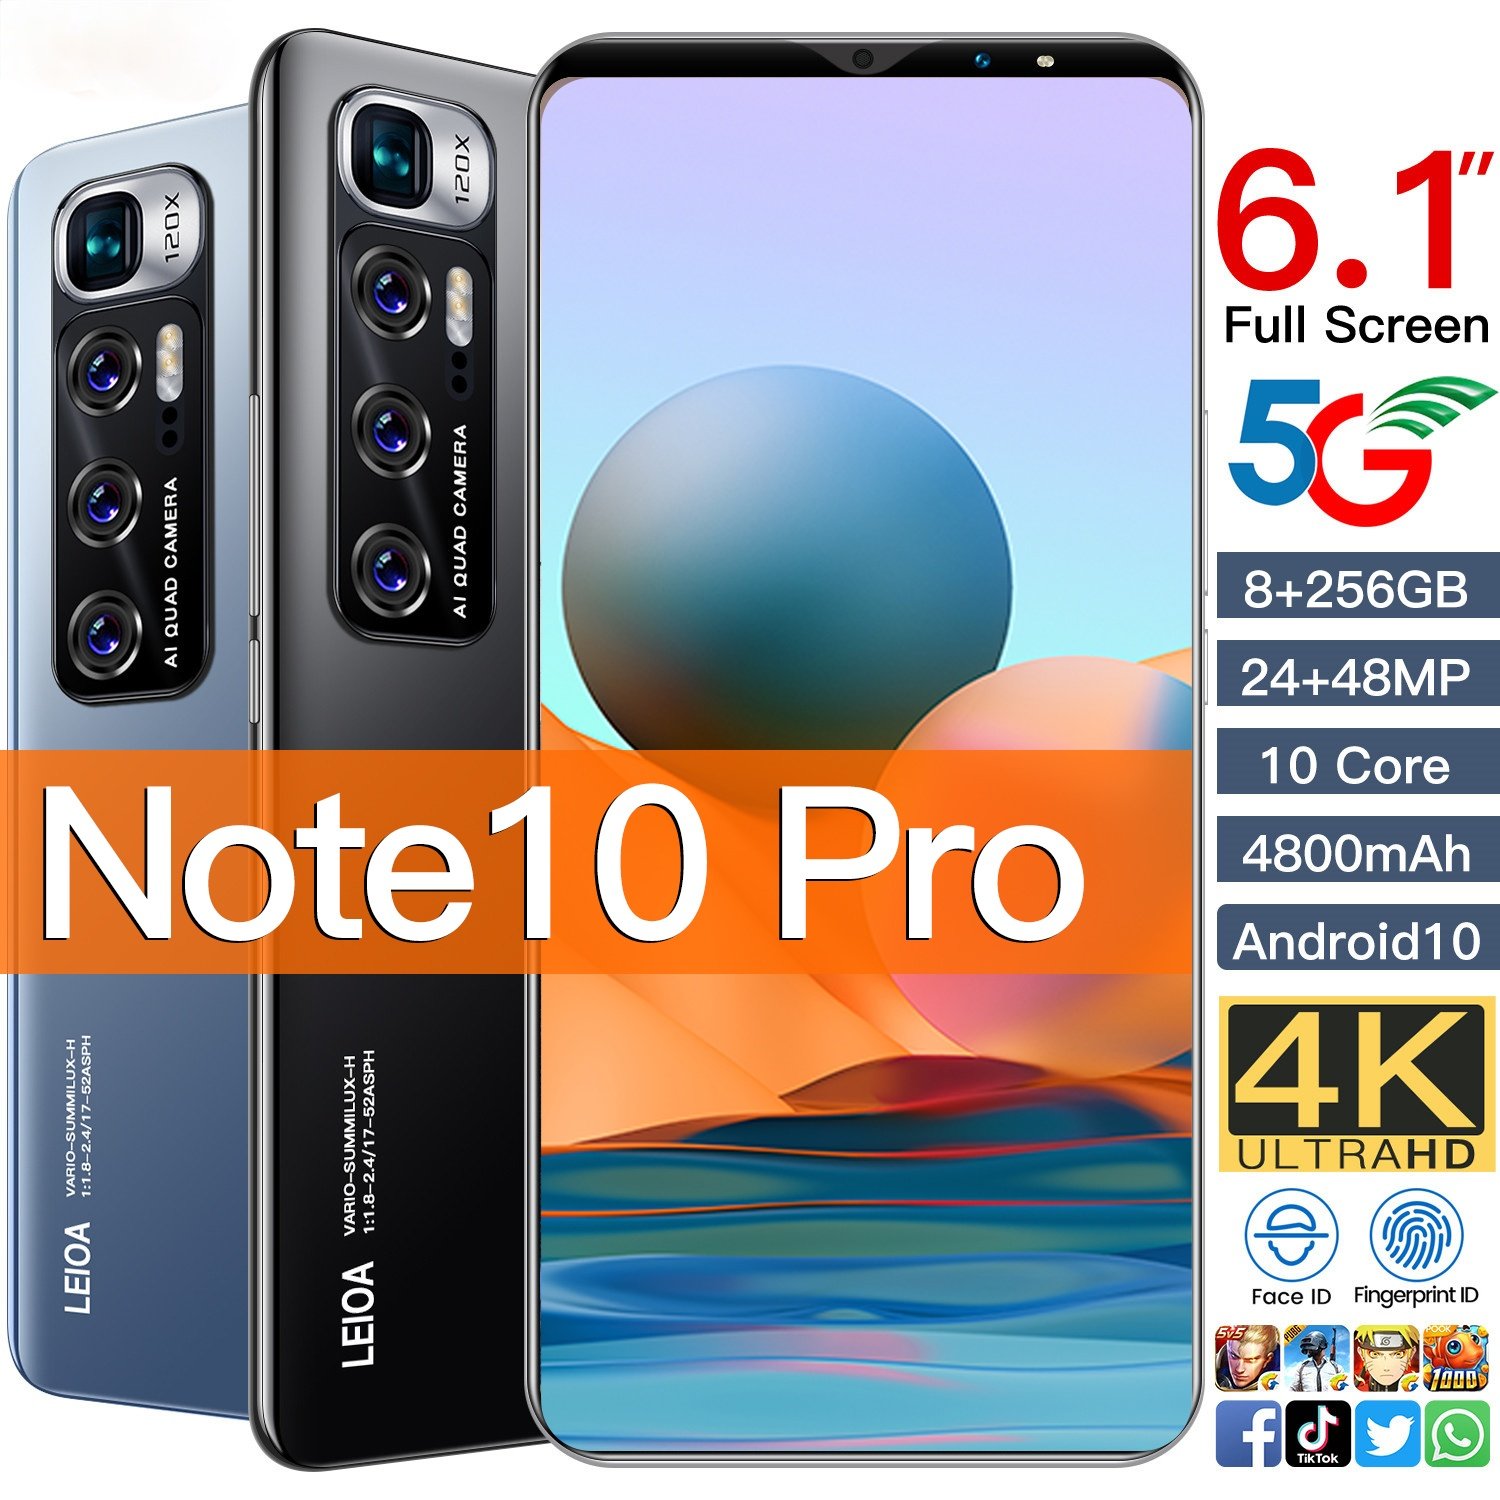 2021 Global Version Note 10 Pro 6.1 Inch Smartphone 8GB+256GB 4800mAh 24+48MP Android 10 Google Unlocked 5G Network Mobilephone